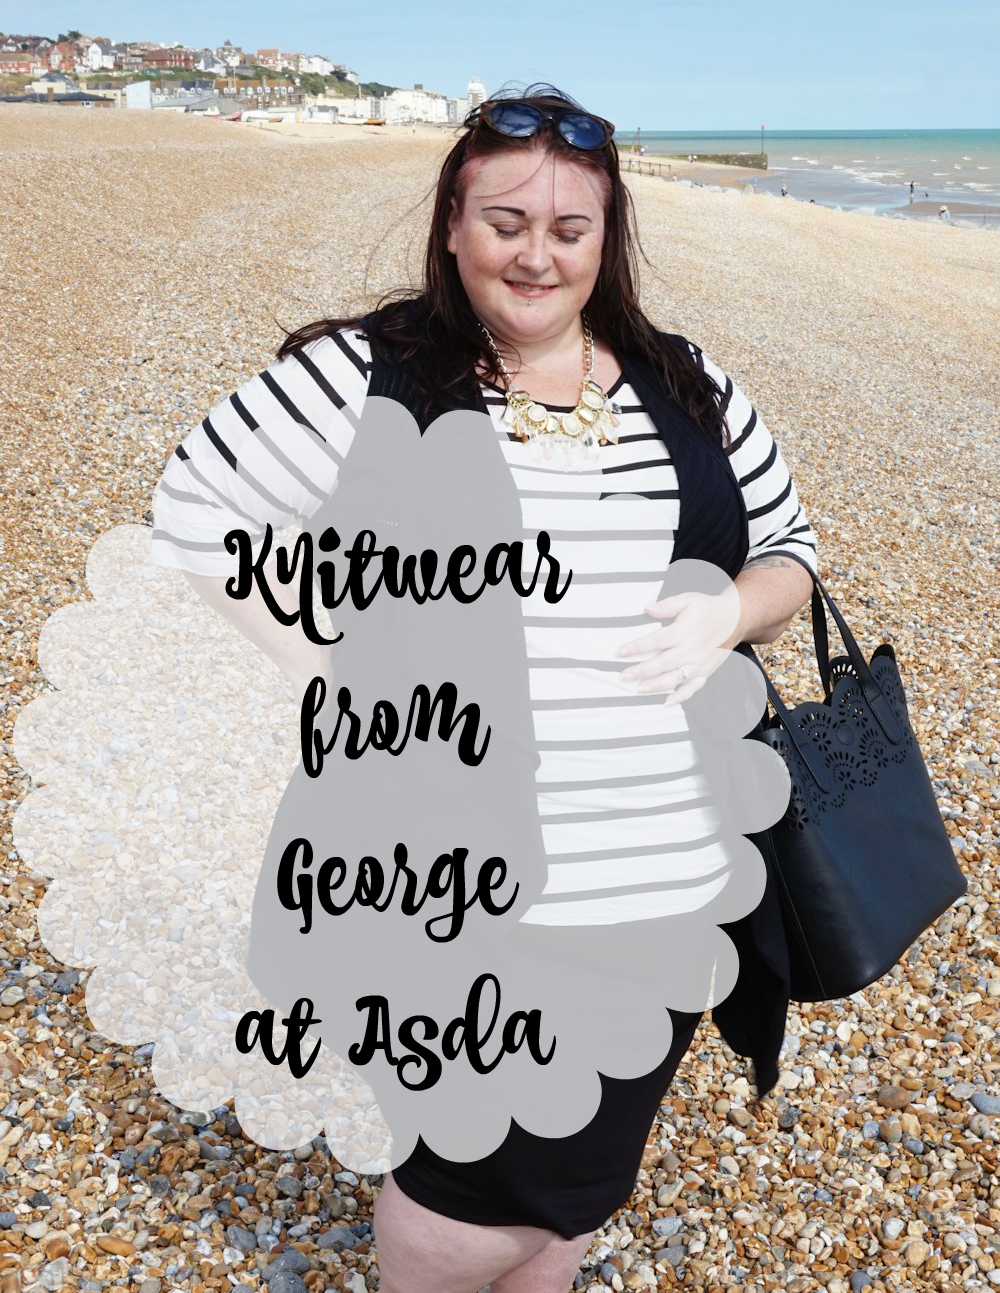 Knitwear-with-George-at-Asda www.xloveleahx.co.uk